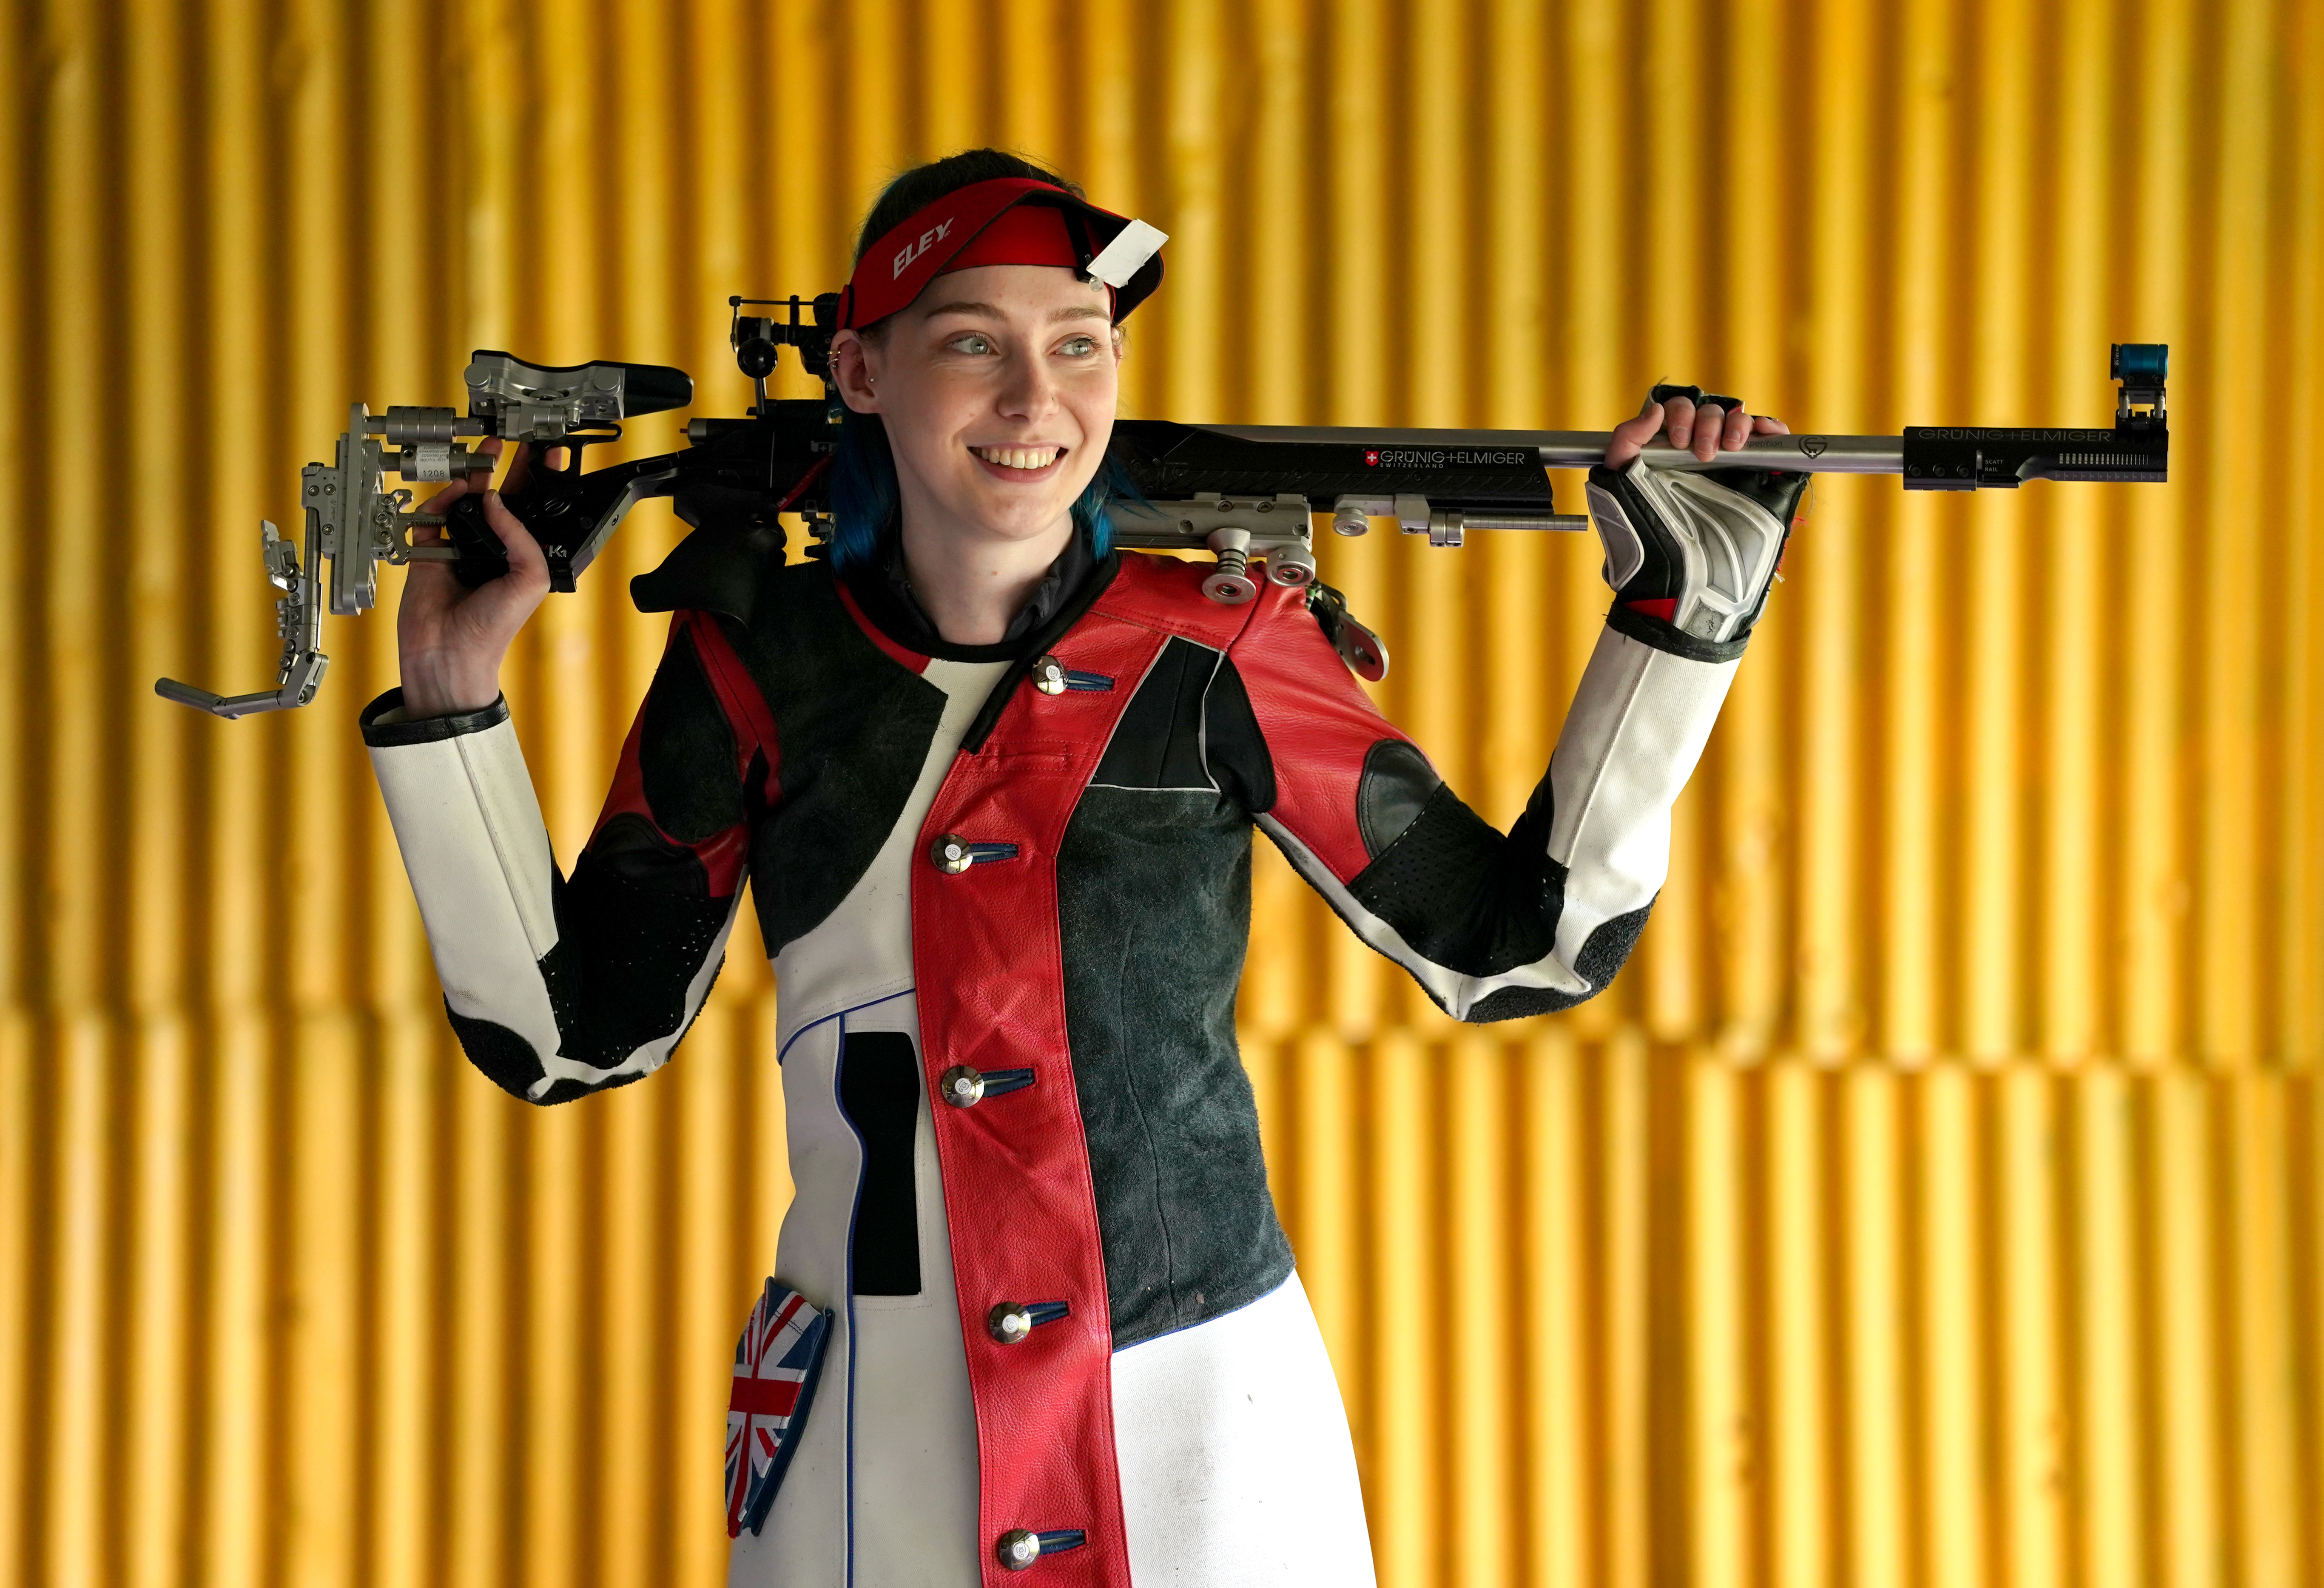 <p>Seonaid McIntosh during a photocall for the Tokyo Olympics 2020 at her shooting range in Alloa, Scotland. Picture date: Tuesday June 15, 2021.</p>